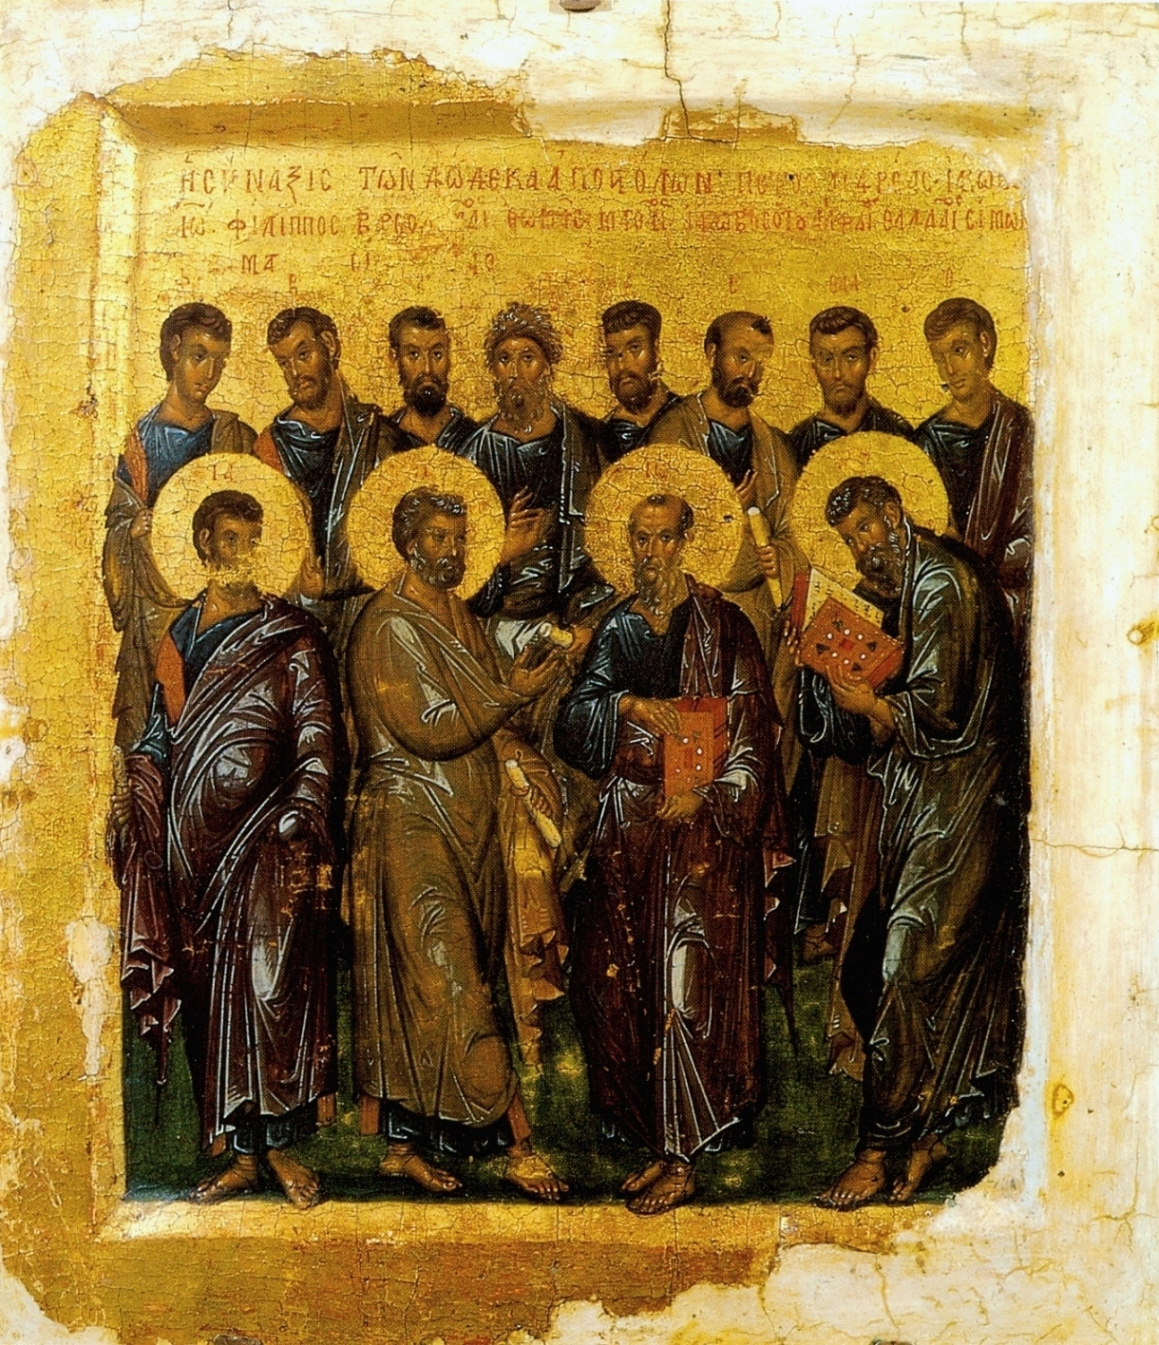 the foundation of orthodoxy and the Order details as we have seen and will continue to see in our readings, there were key areas of dispute in the early church on essential matters such as the nature.